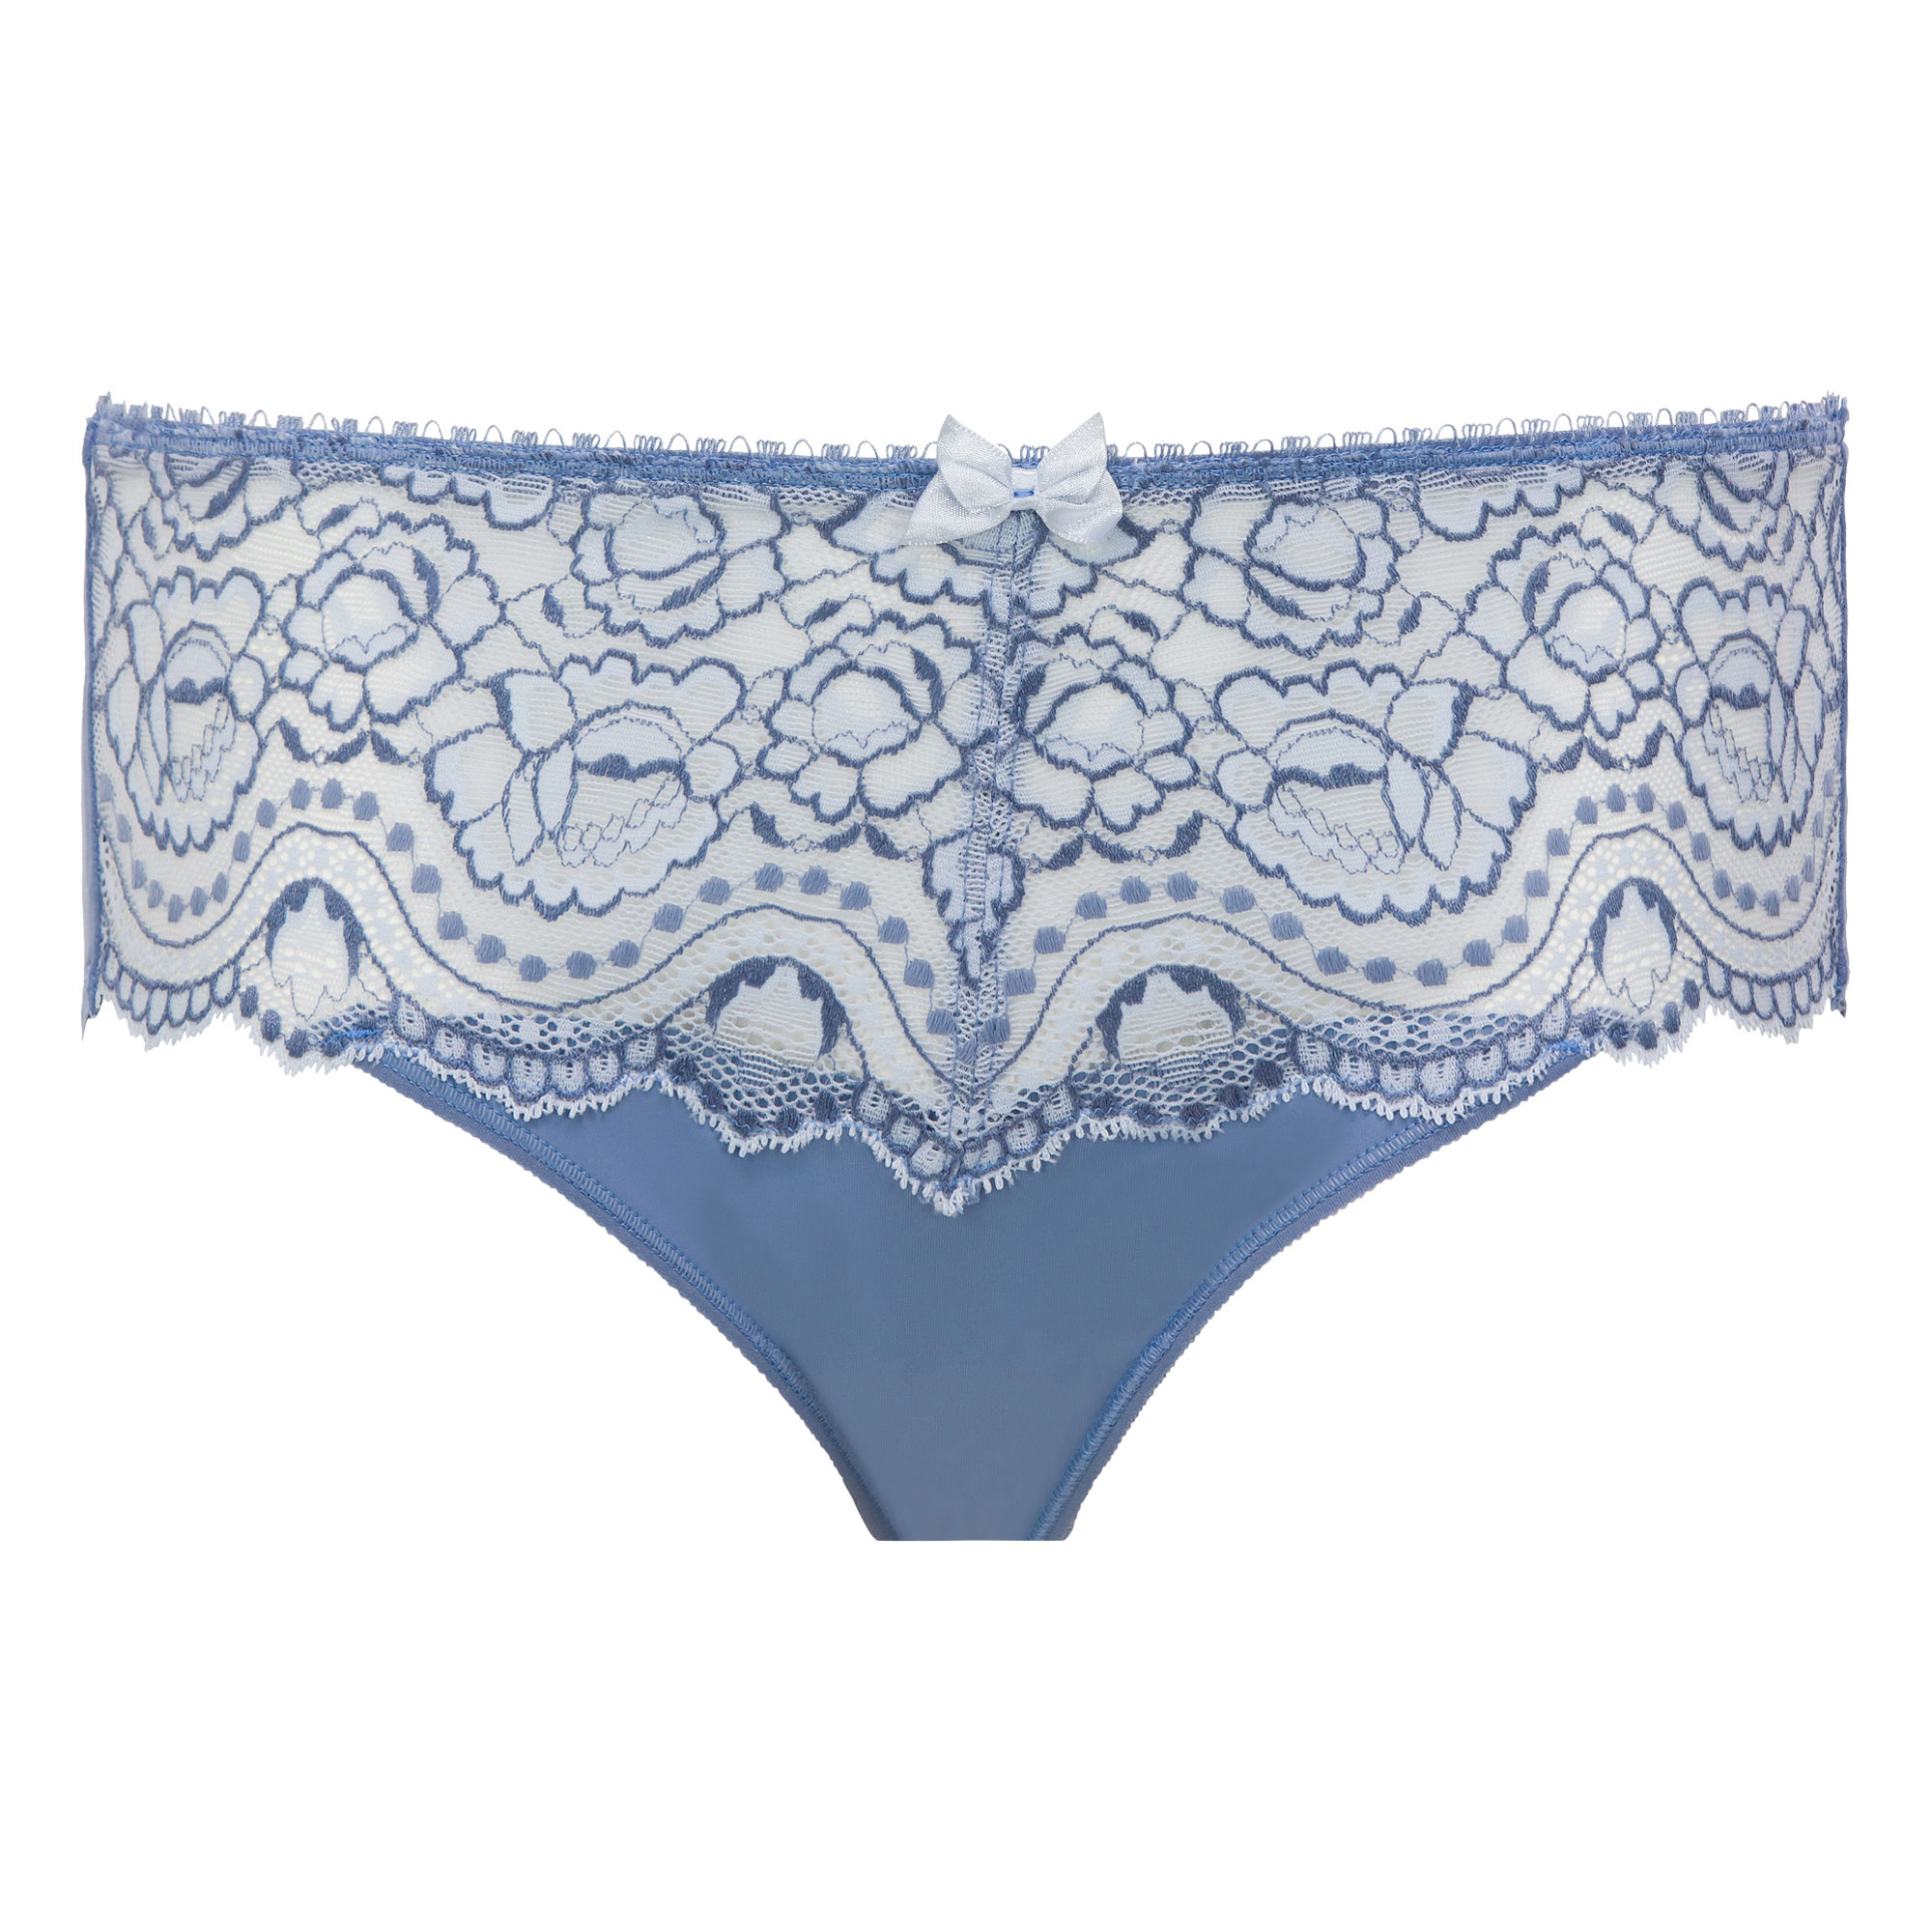 Two-tone denim blue Midi briefs - Flower Elegance-PLAYTEX